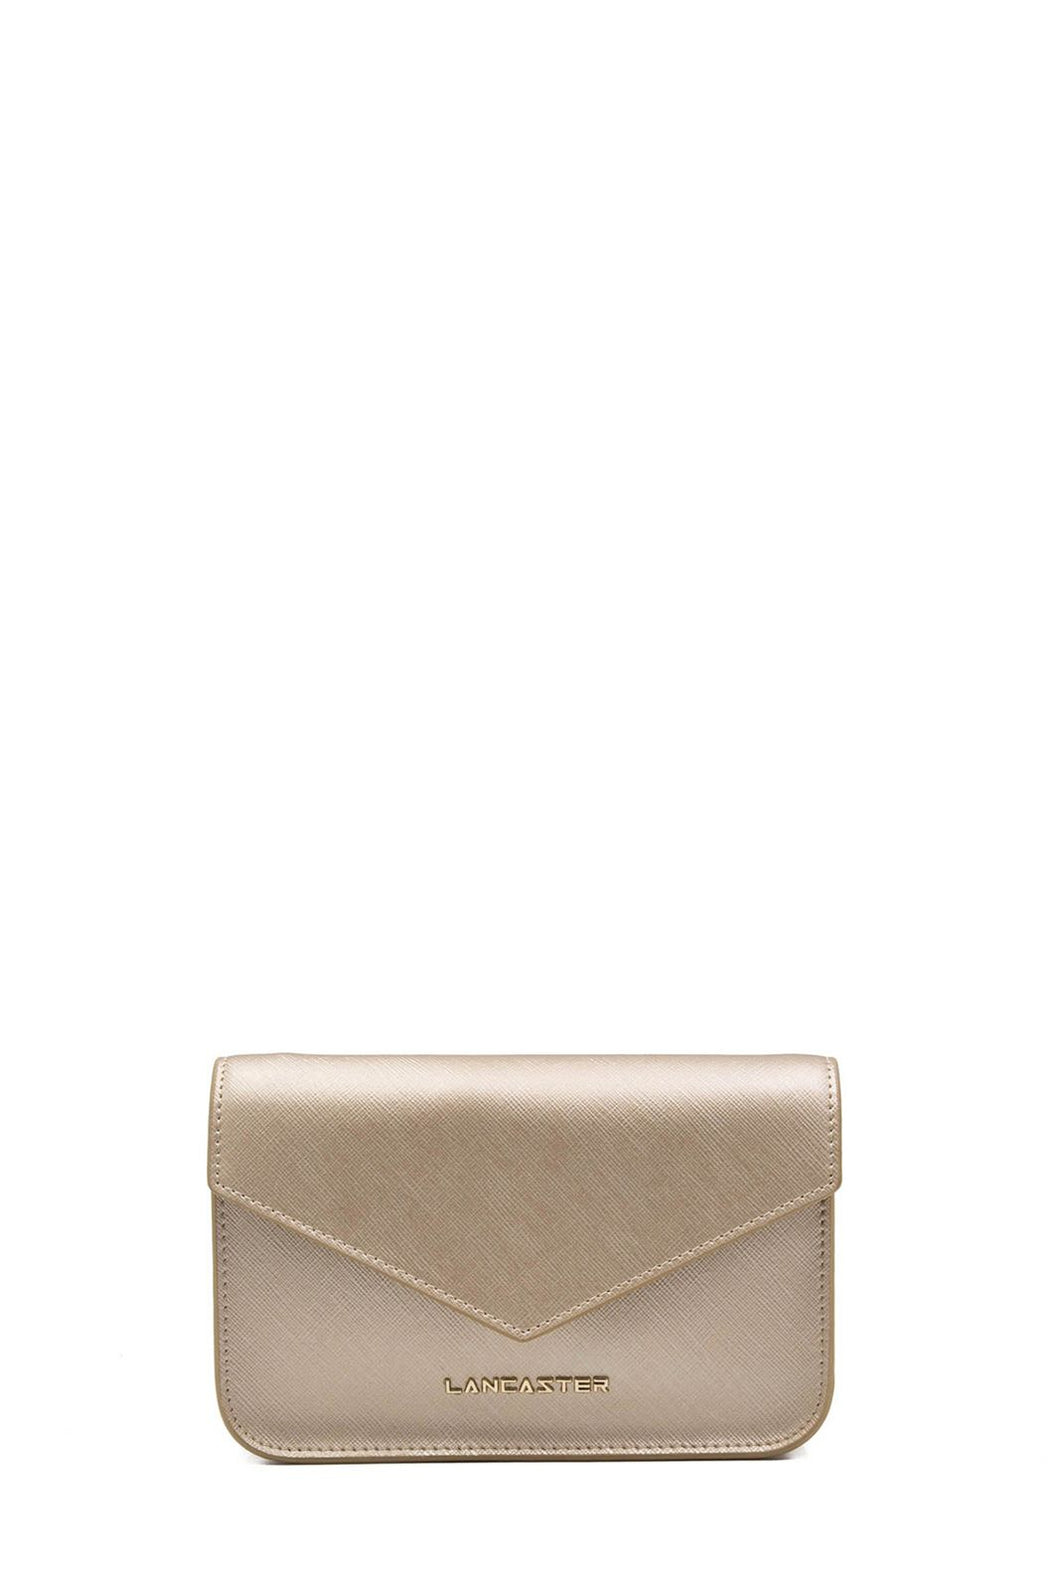 LANCASTER PARIS Signature Saffiano mini clutch bag